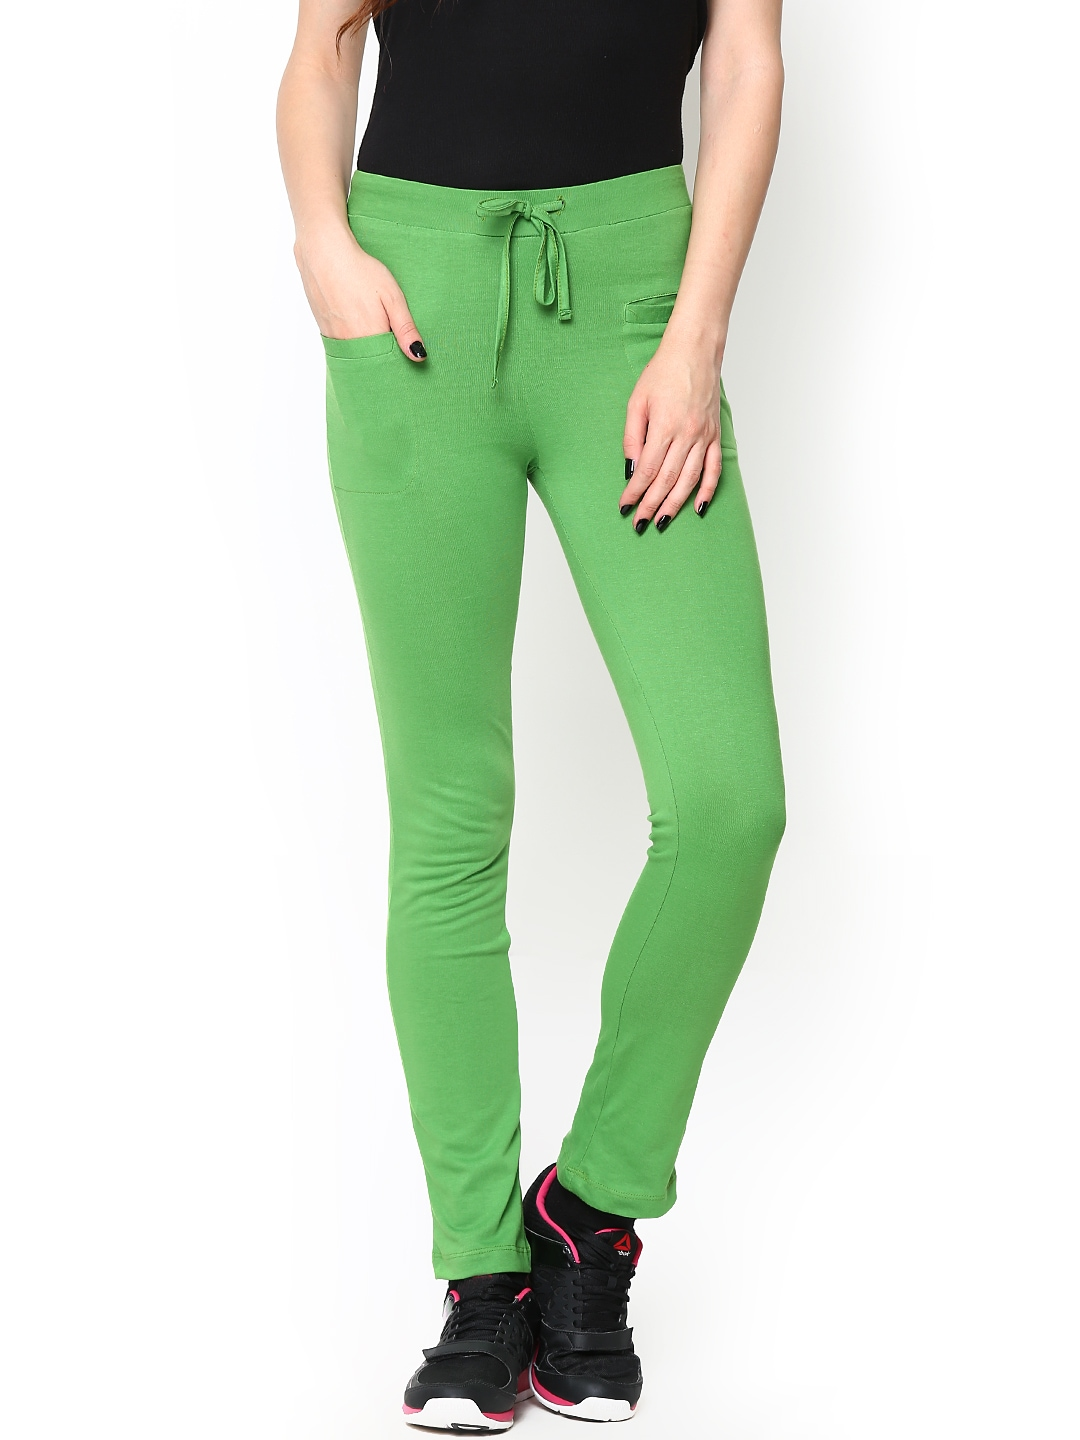 Original Home Clothing Women Clothing Track Pants Style Quotient Track Pants